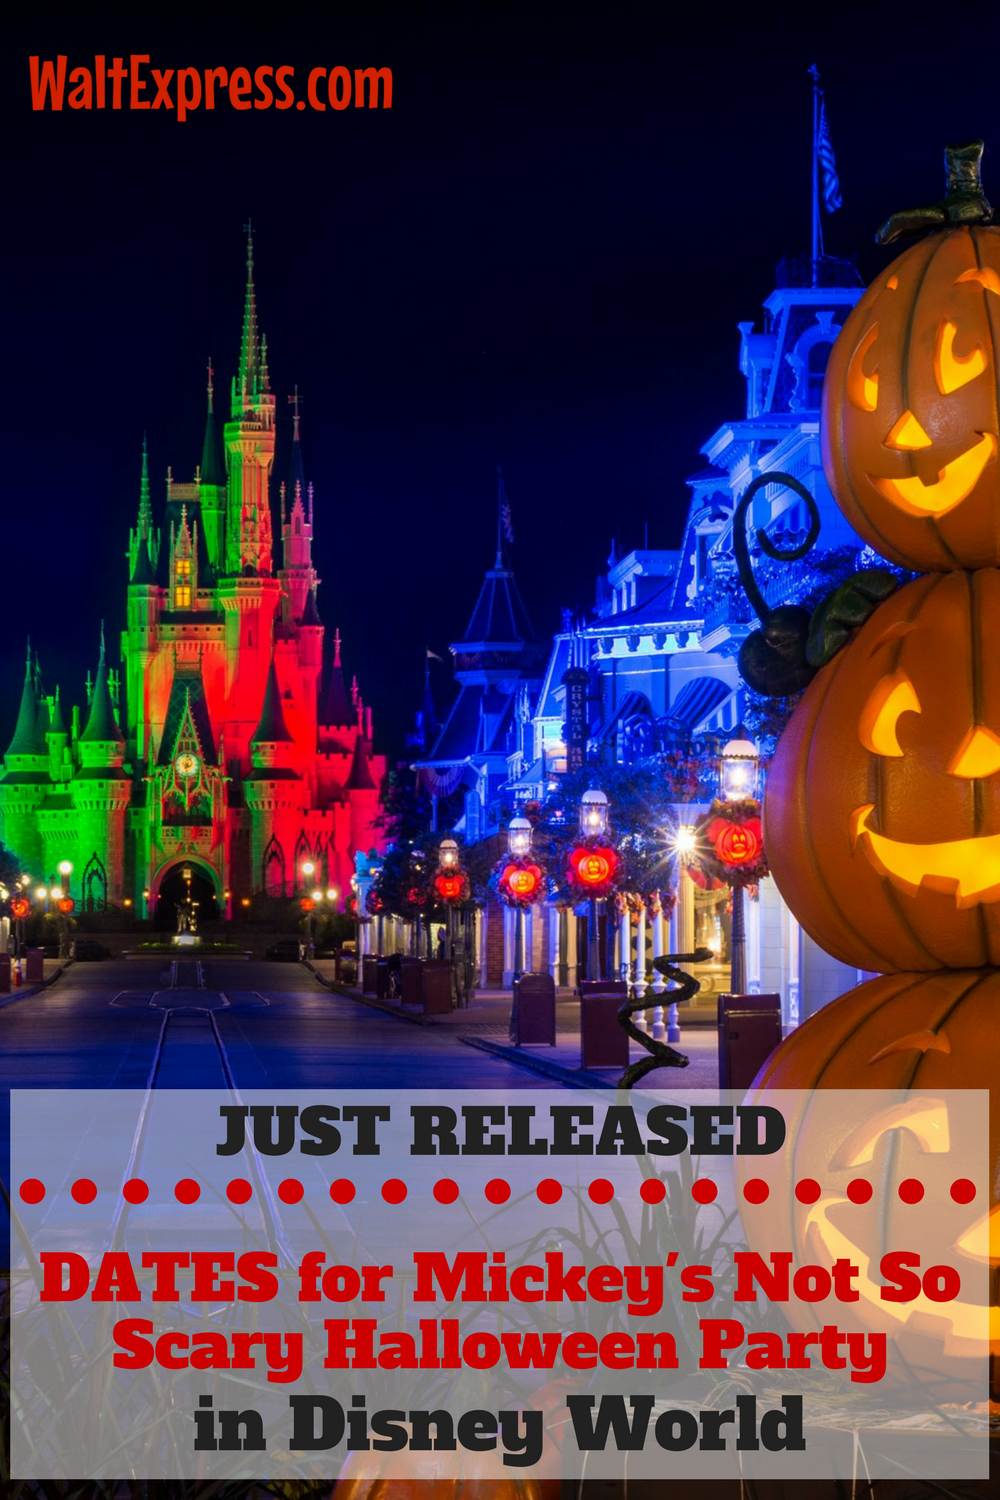 disney releases 2017 dates for mickey's not so scary halloween party